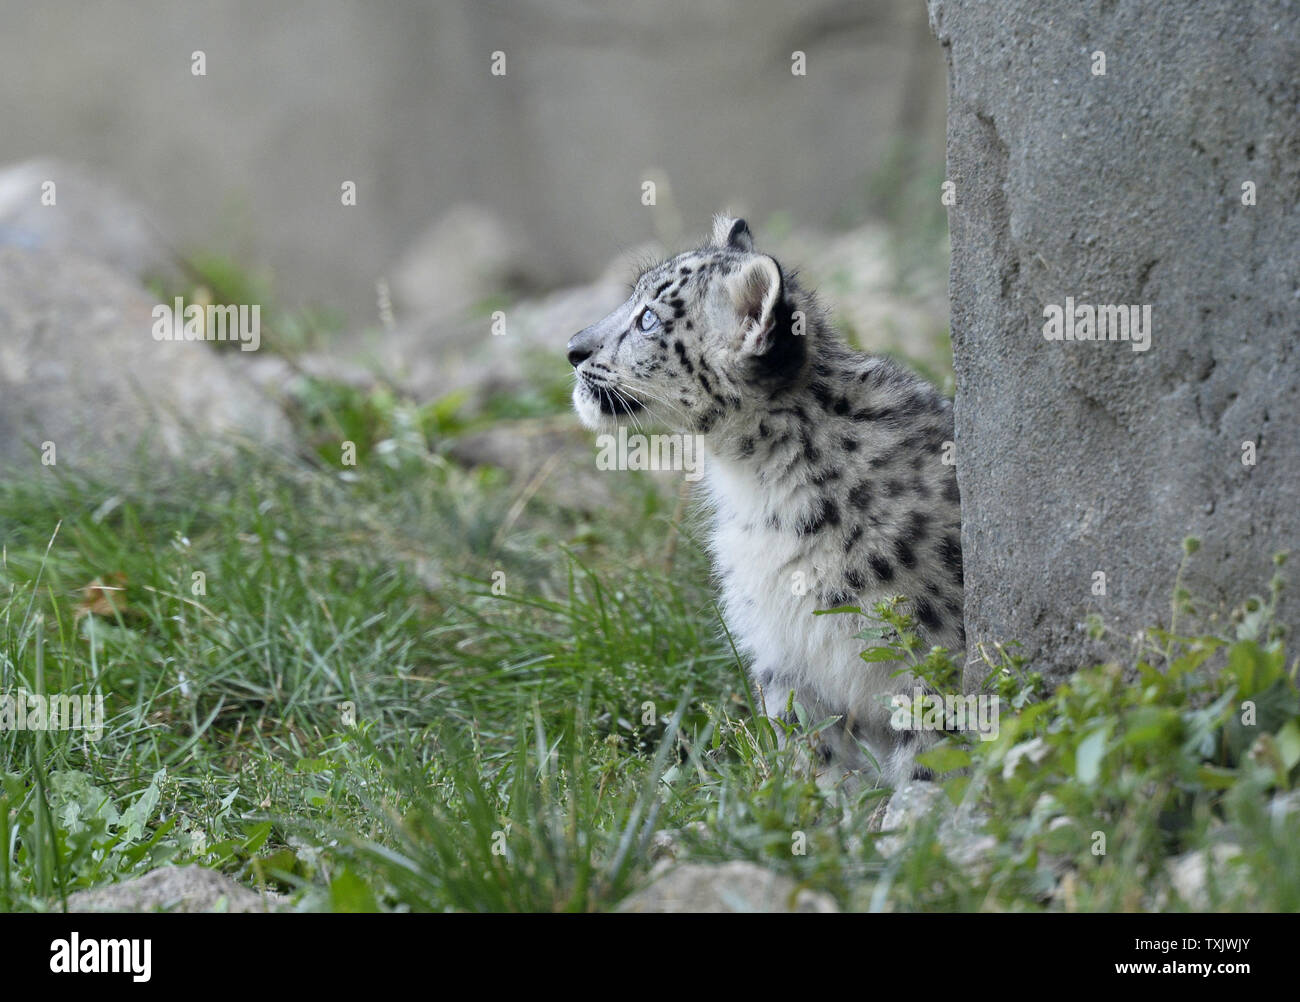 A three month old snow leopard cub makes his public debut at